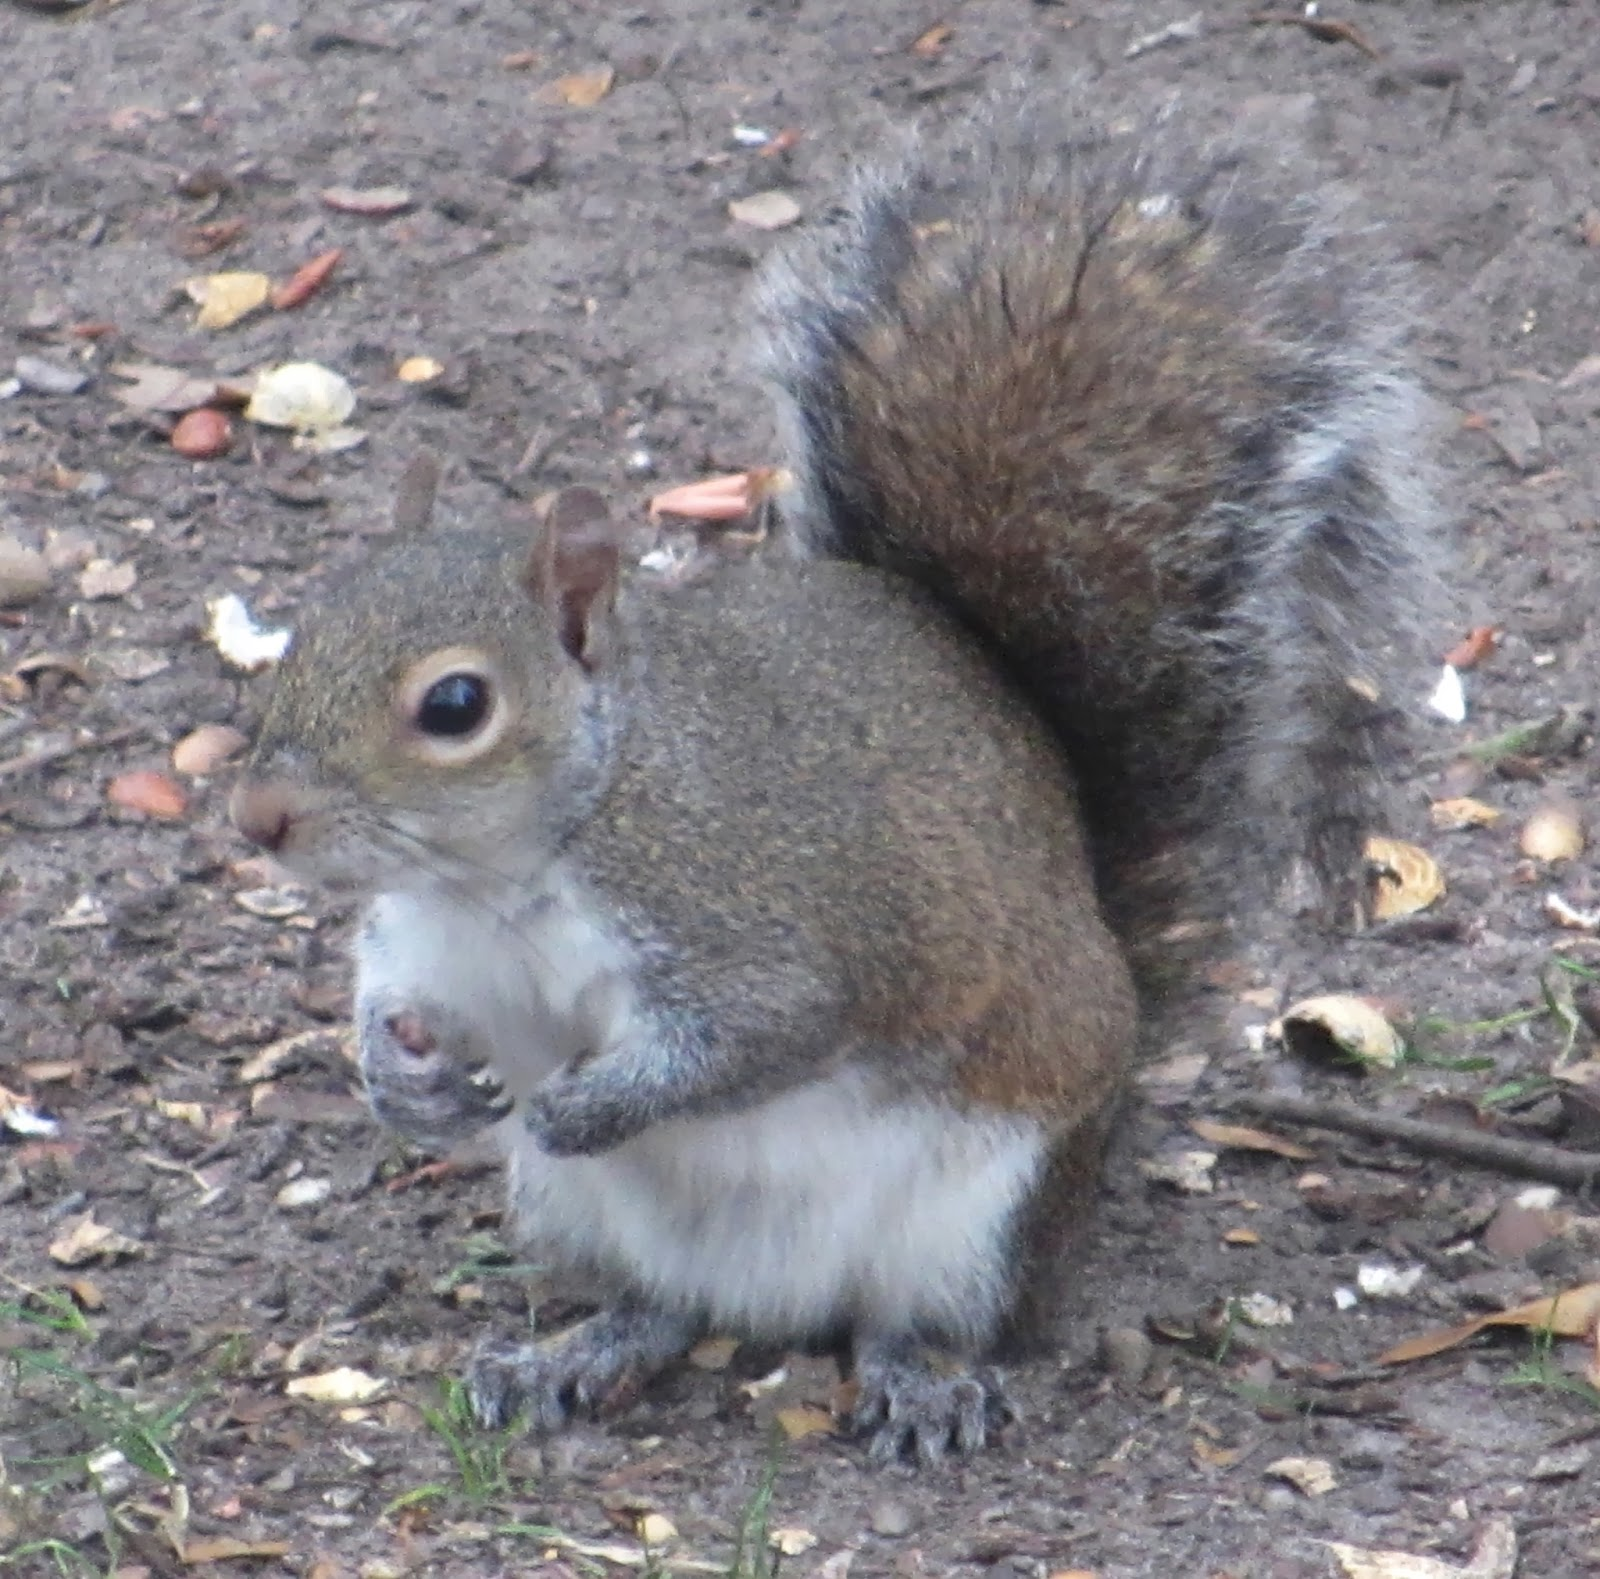 the eastern grey squirrel Squirrels of unusual color on trekohio | all the squirrels that i am featuring today are eastern gray squirrels (sciurus carolinensis) although my focus is going to be on unusually colored squirrels, lets start by taking a look at some normally colored ones.